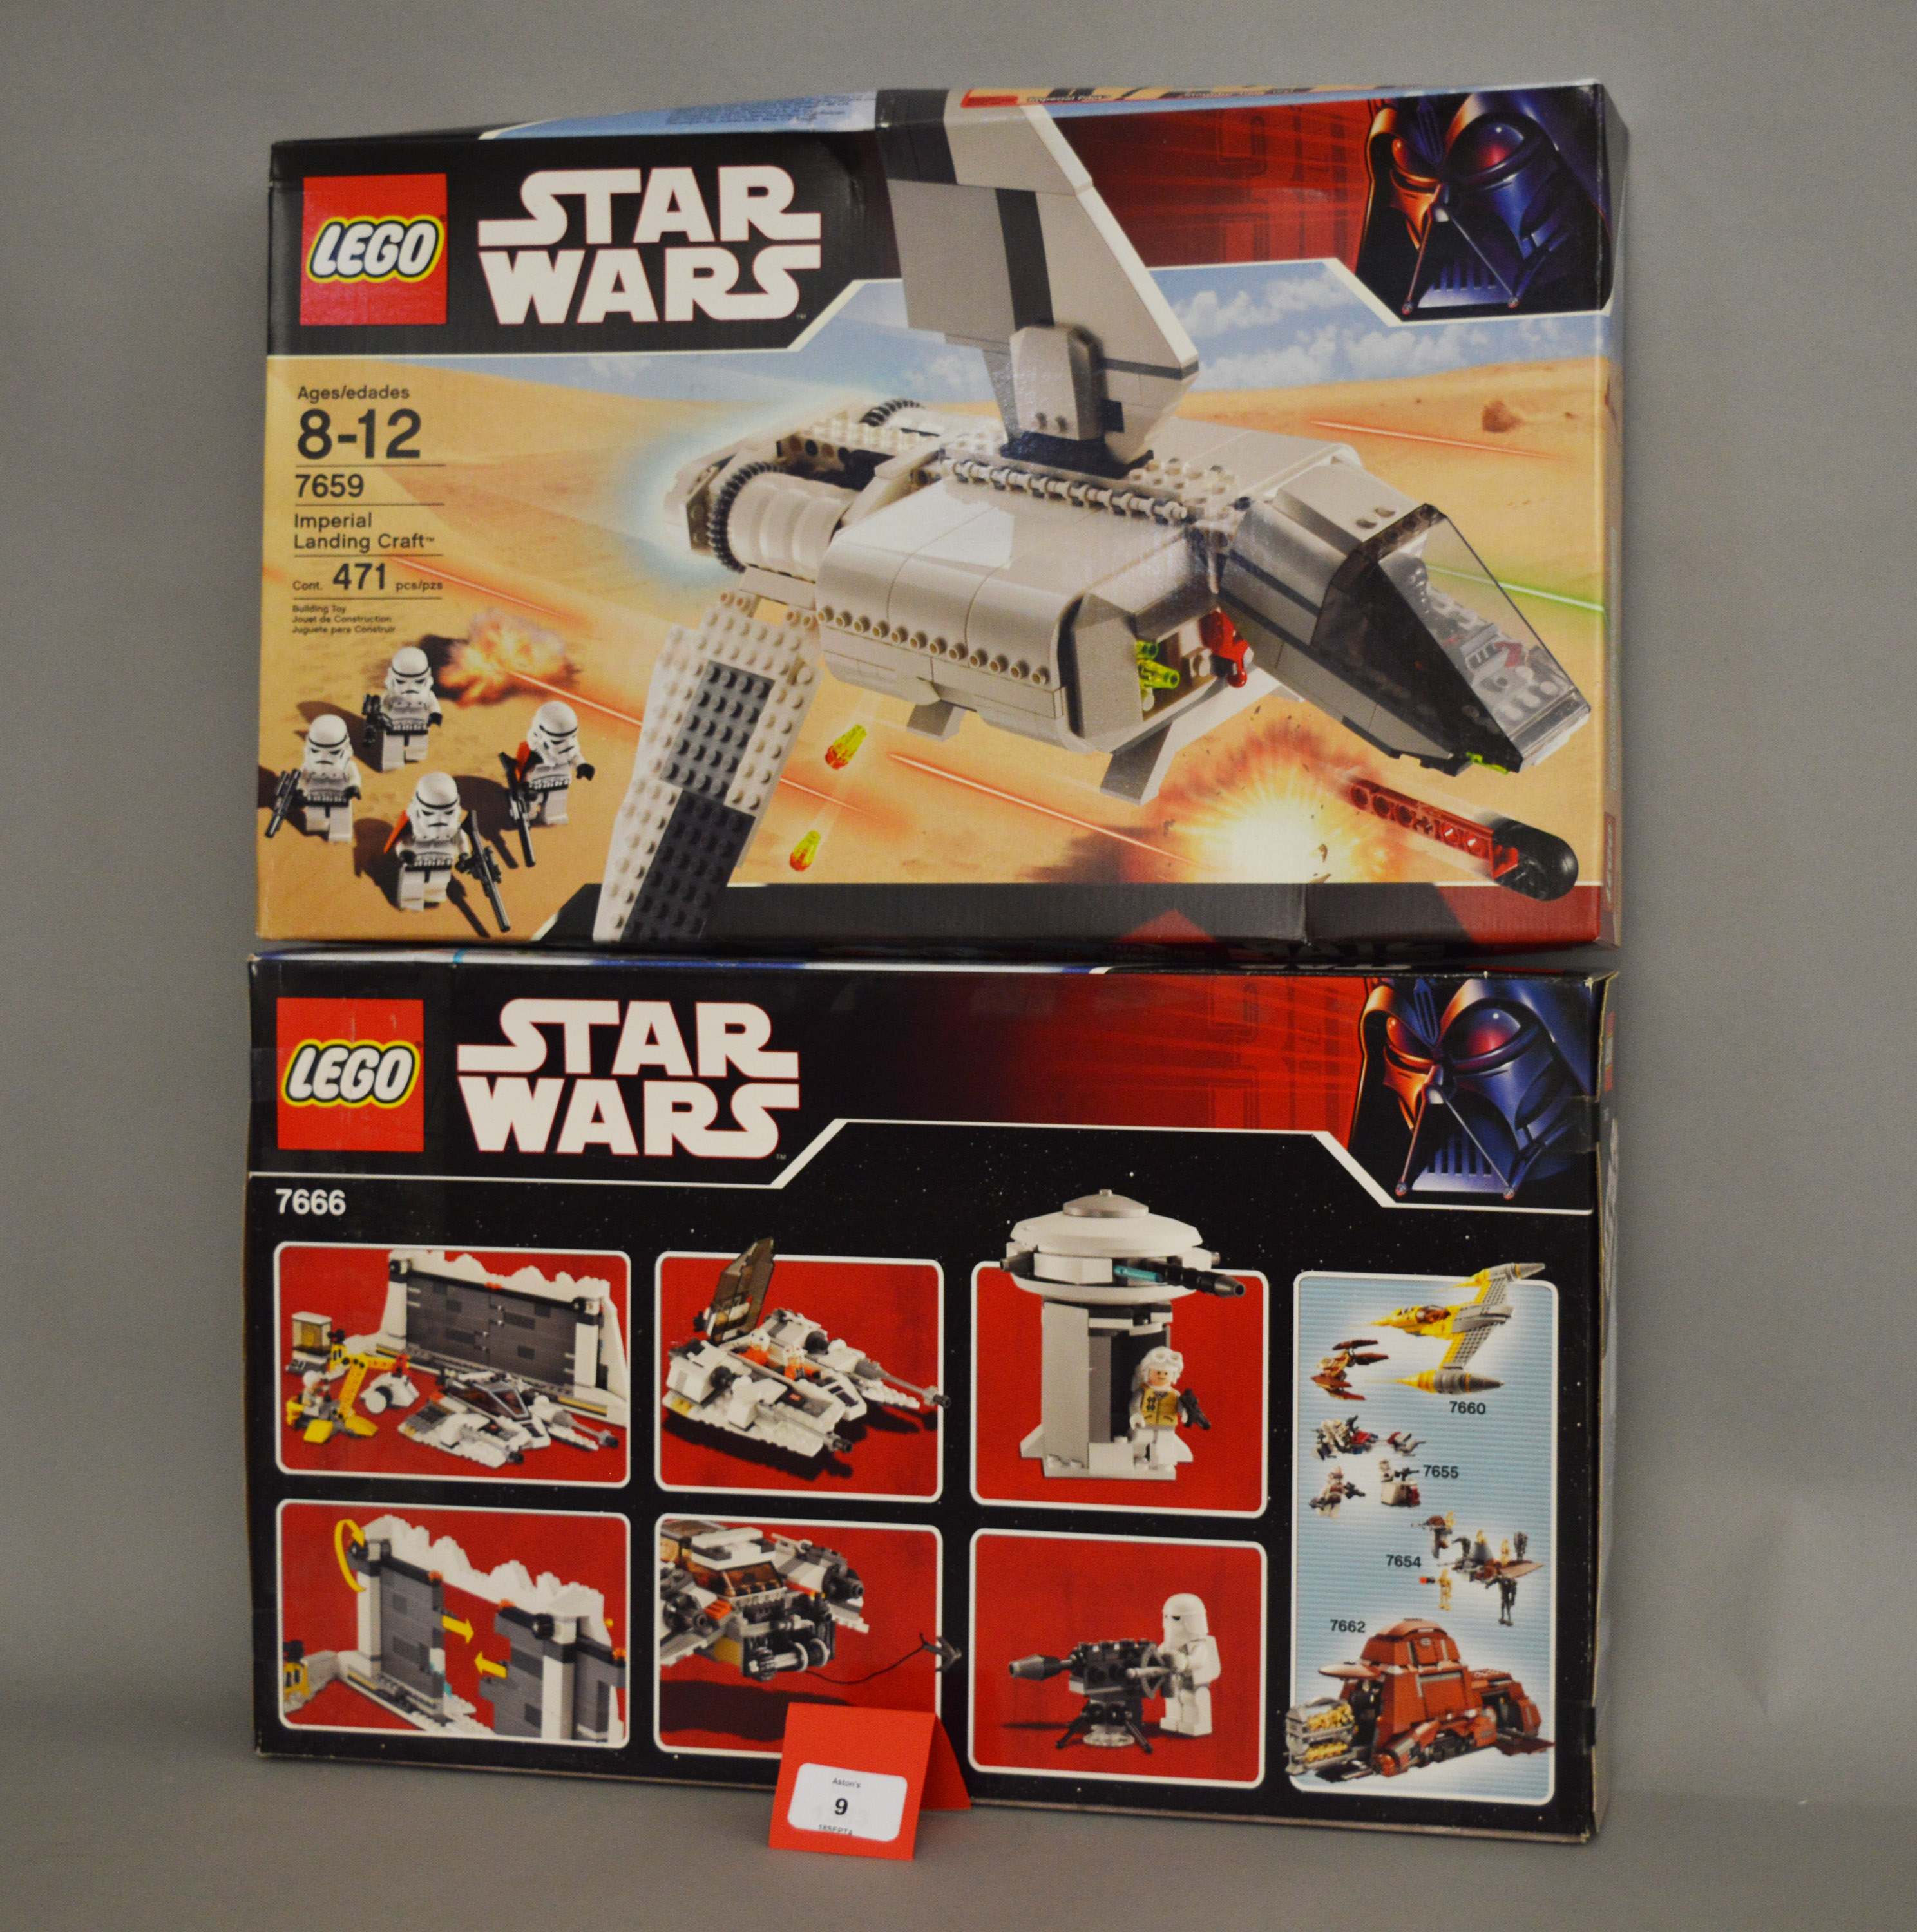 Lot 9 - Two Lego Star Wars sets: 7659 Imperial Landing Craft; 7666 Hoth Rebel Base. Both sealed.